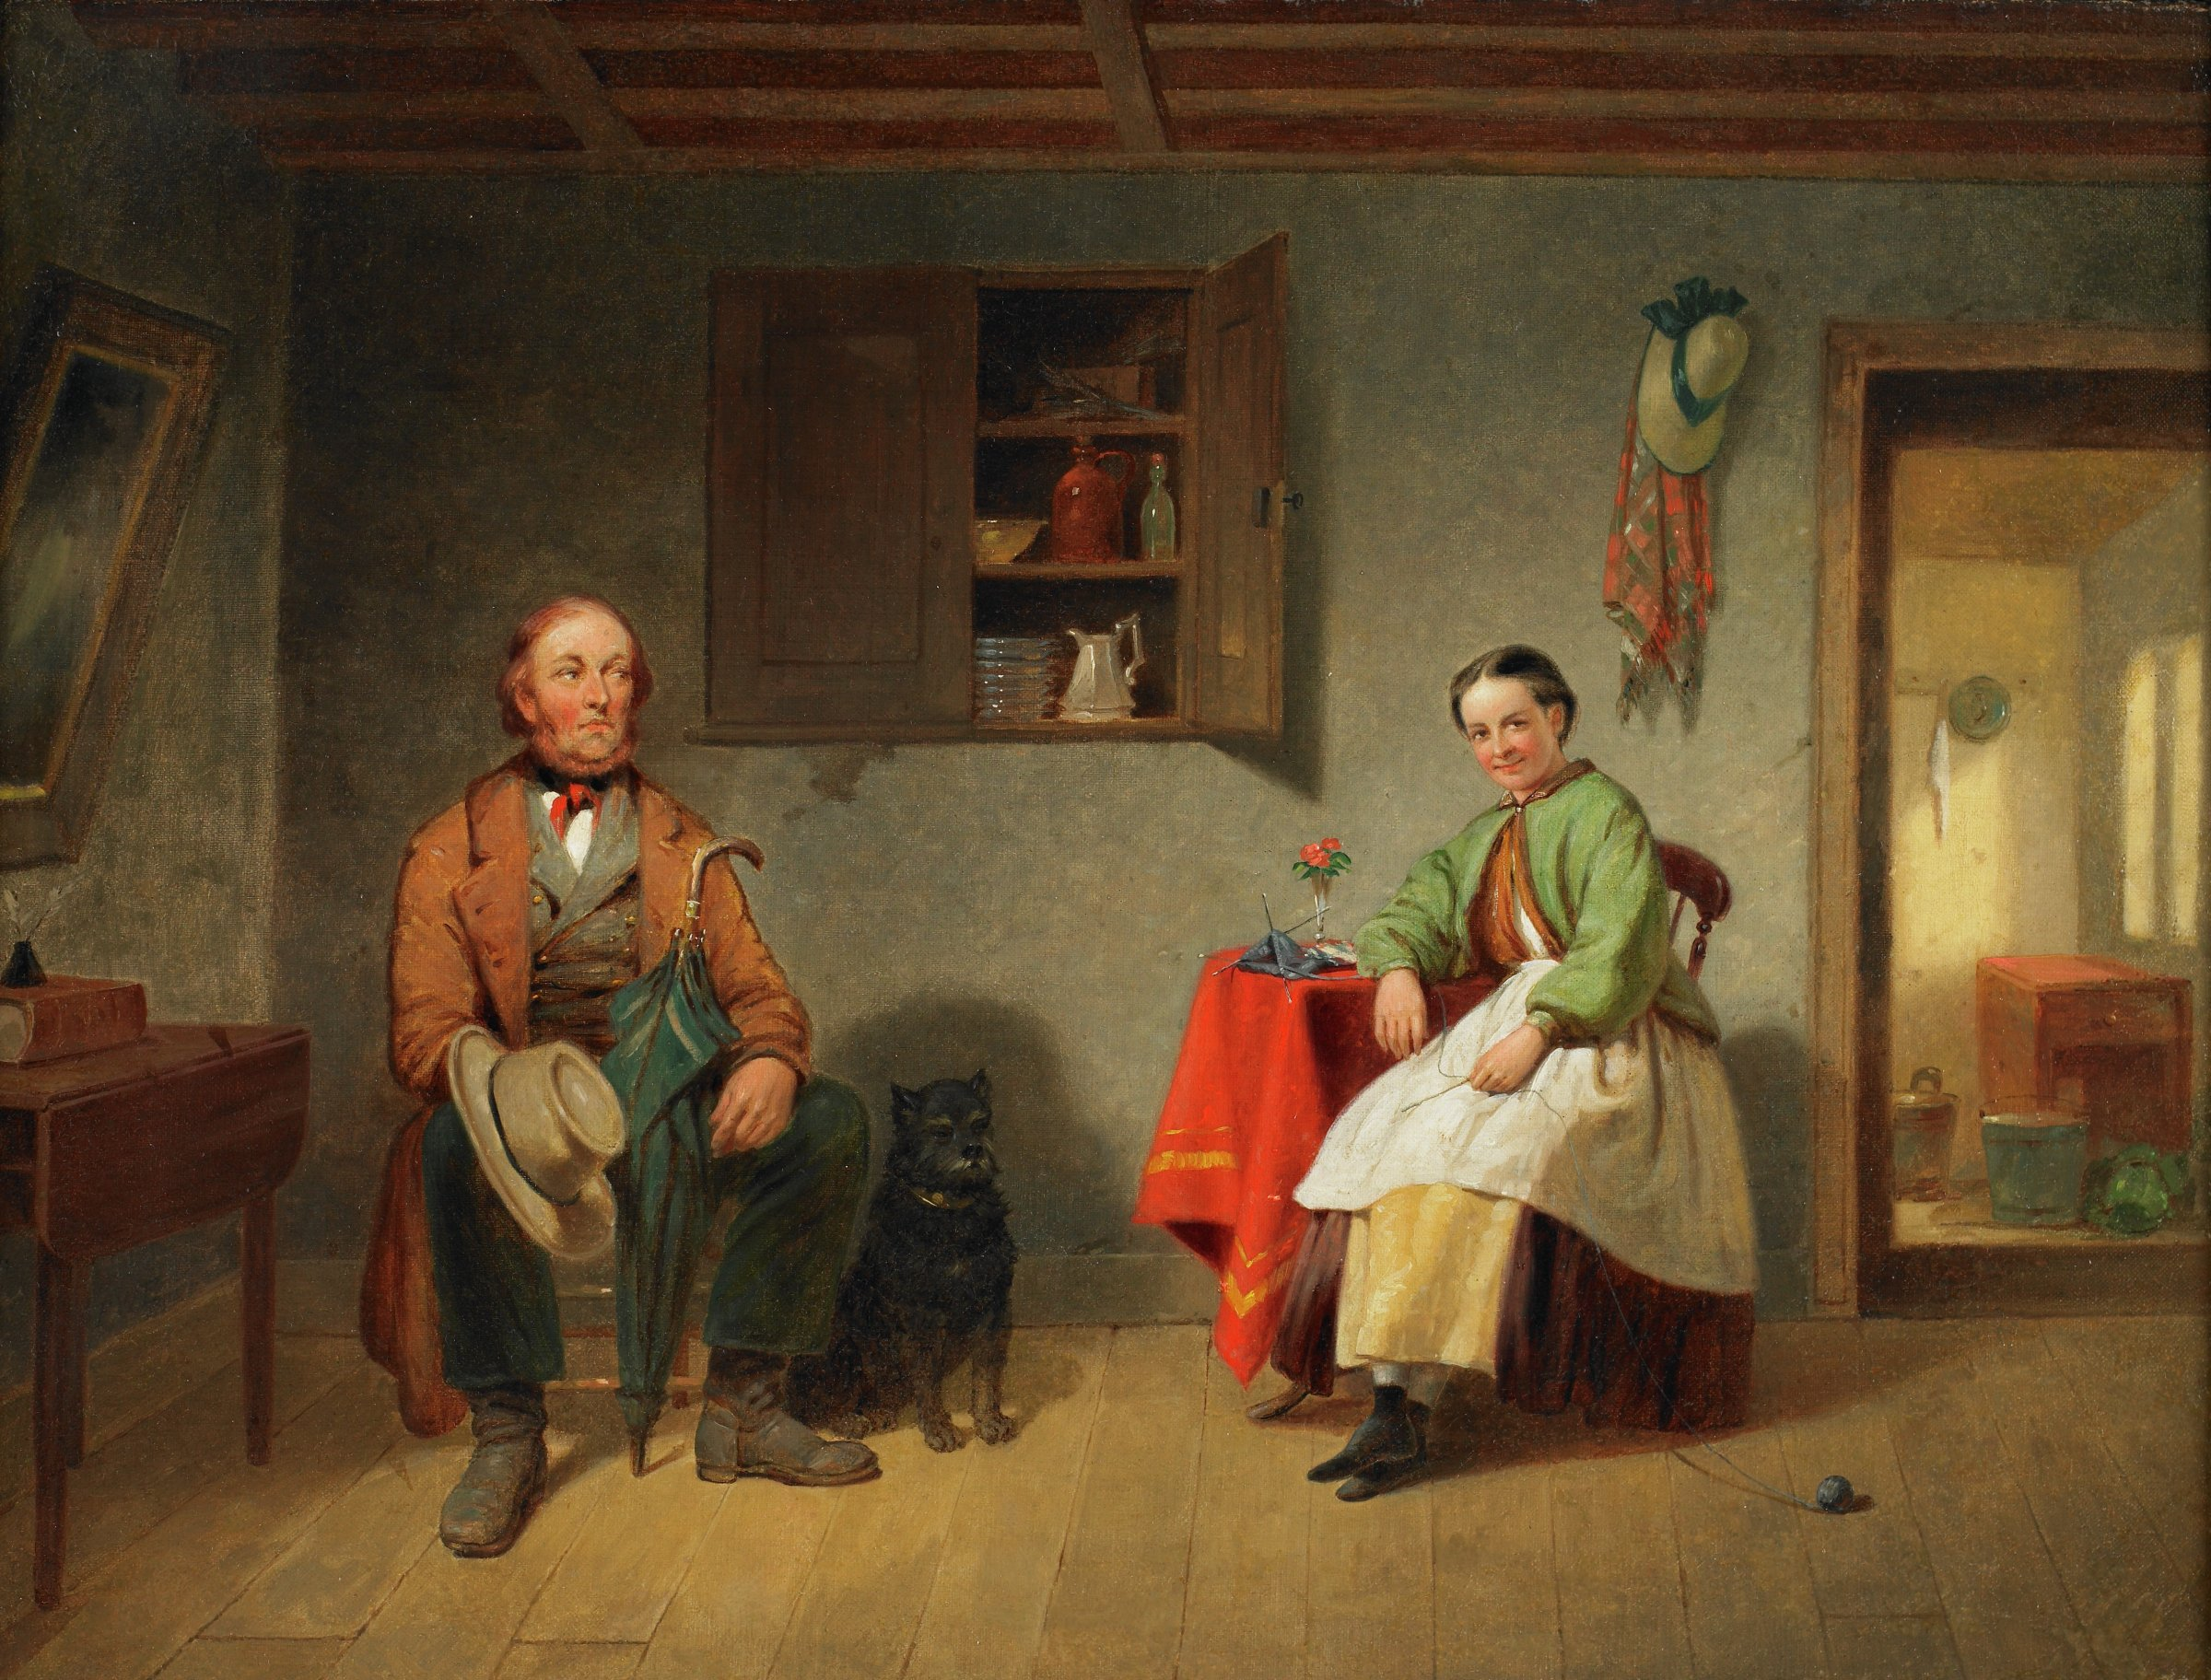 Interior scene with a middle-aged bearded man seated to the left with a hat in one hand and his green umbrella leaning against his arm. A Scottish terrier is at his side, to the right. A young woman is seated at right with her right arm resting on a table with red tablecloth. Her knitting is on the table and the ball of yarn is on the floor. A cabinet with dishes is on the wall between the couple. A door is at far right and a straw bonnet and plaid shawl hang from a peg to the left of the door.